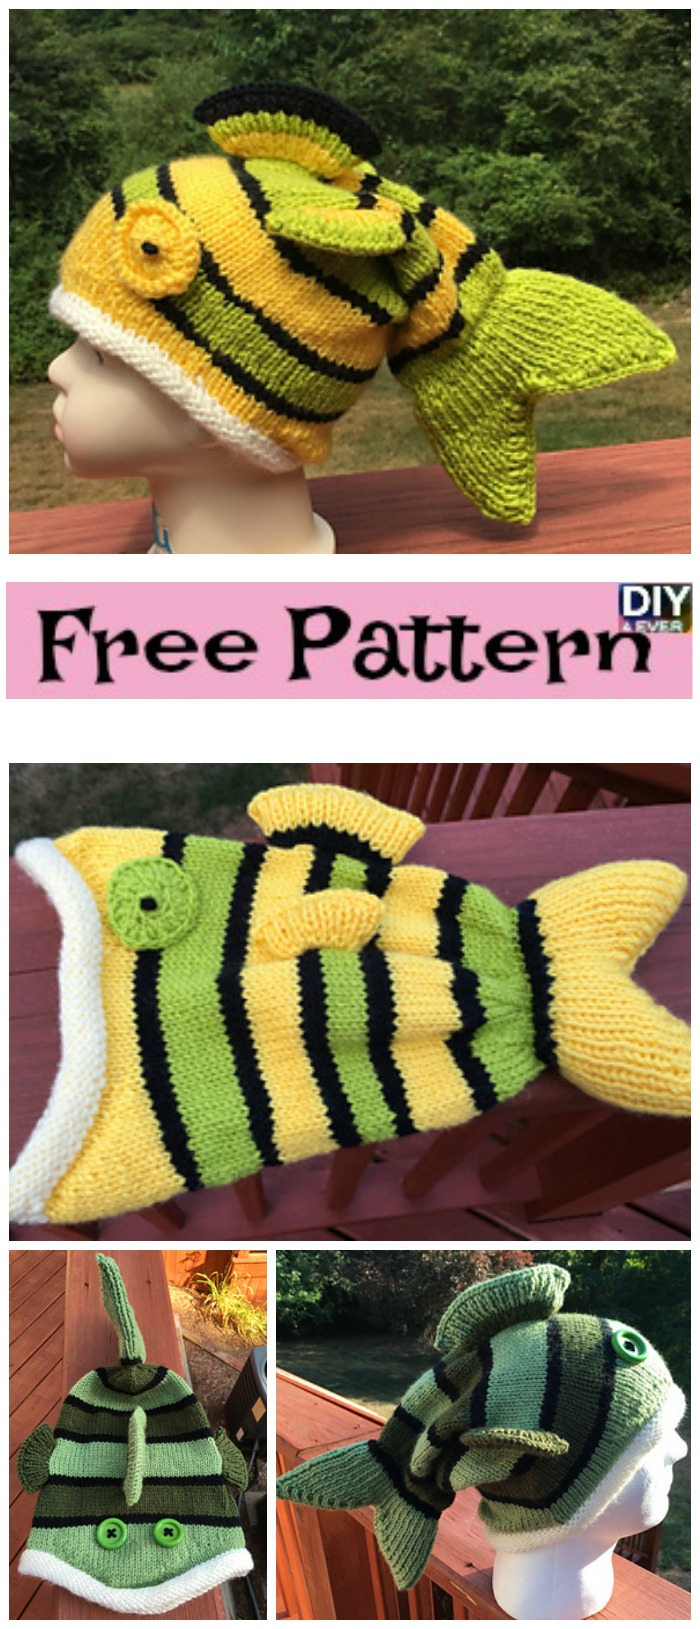 Cute Knitted Fish Hat - Free Pattern - DIY 4 EVER